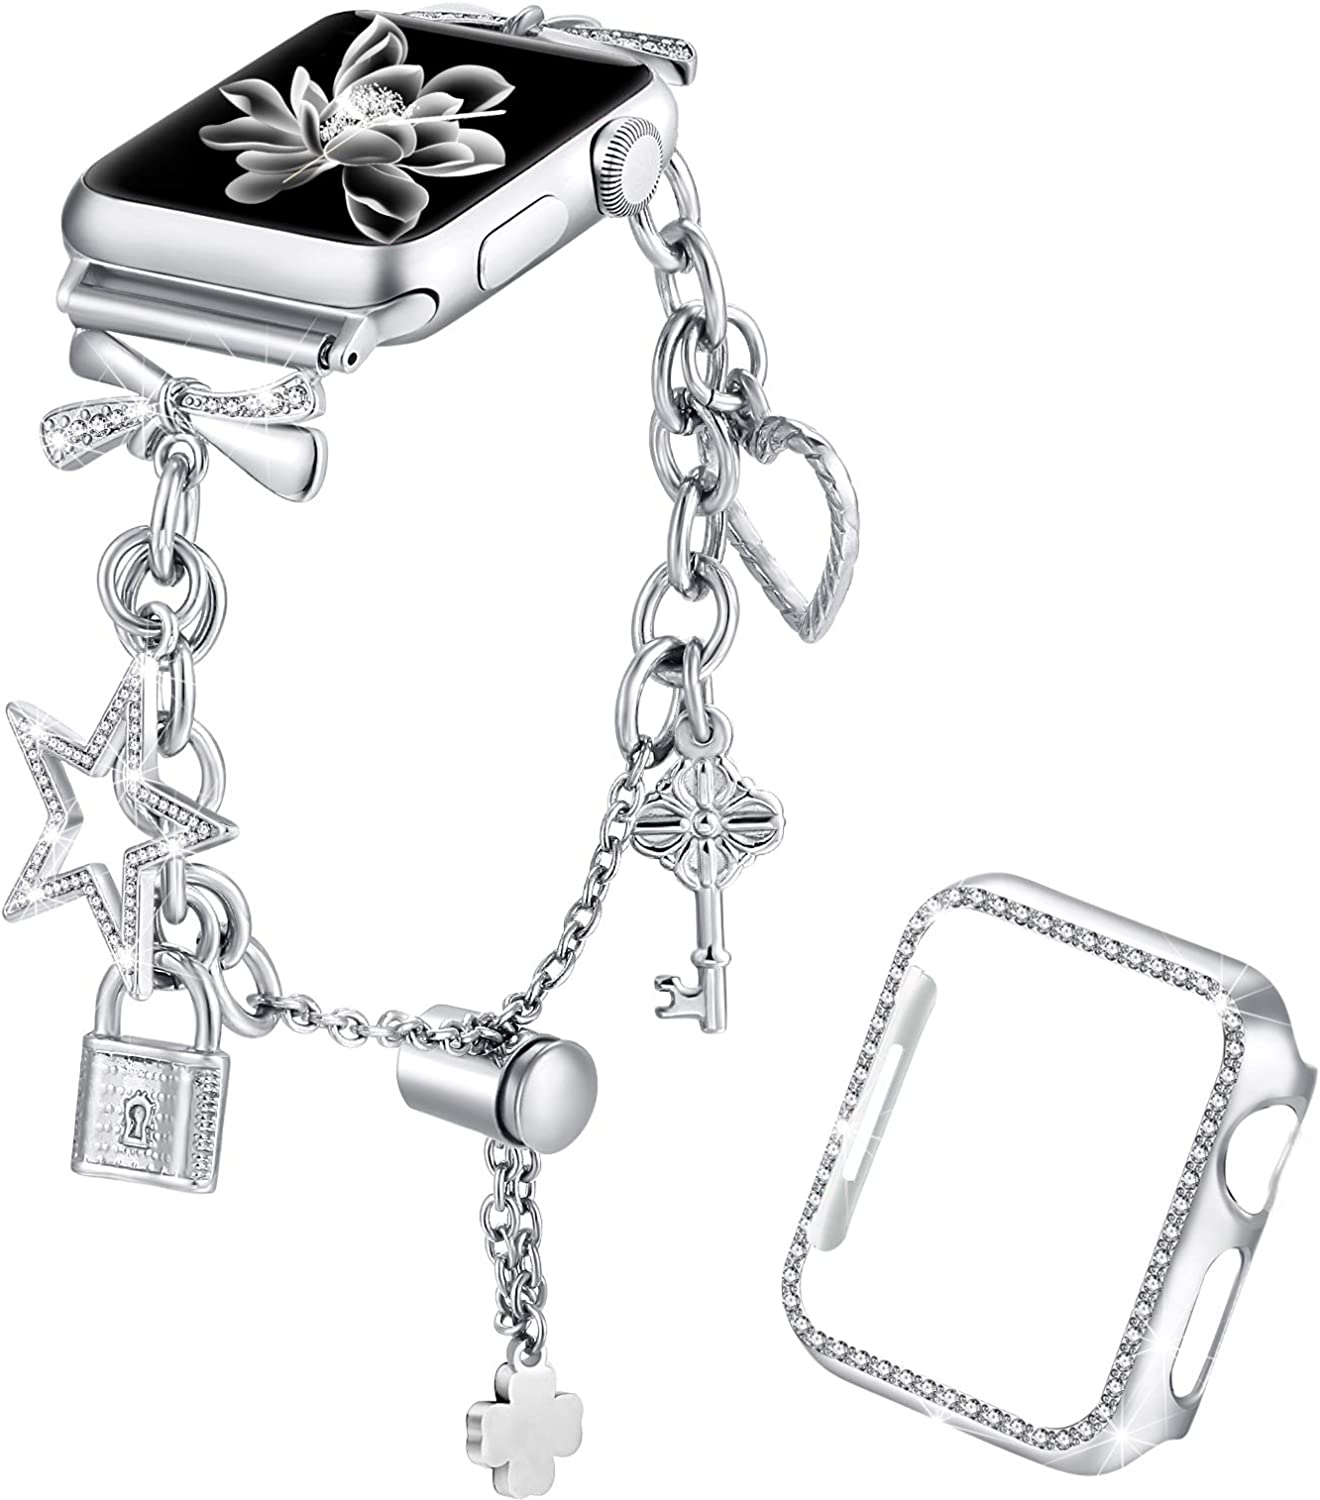 Dilando Bling Bracelet Compatible with Apple Watch Bands Charms 42mm 44mm with Bling Diamond Case Women Metal Strap for Iwatch Series SE 6 5 4 3 2 1 Adjustable Stainless Steel (Silver, 44mm)